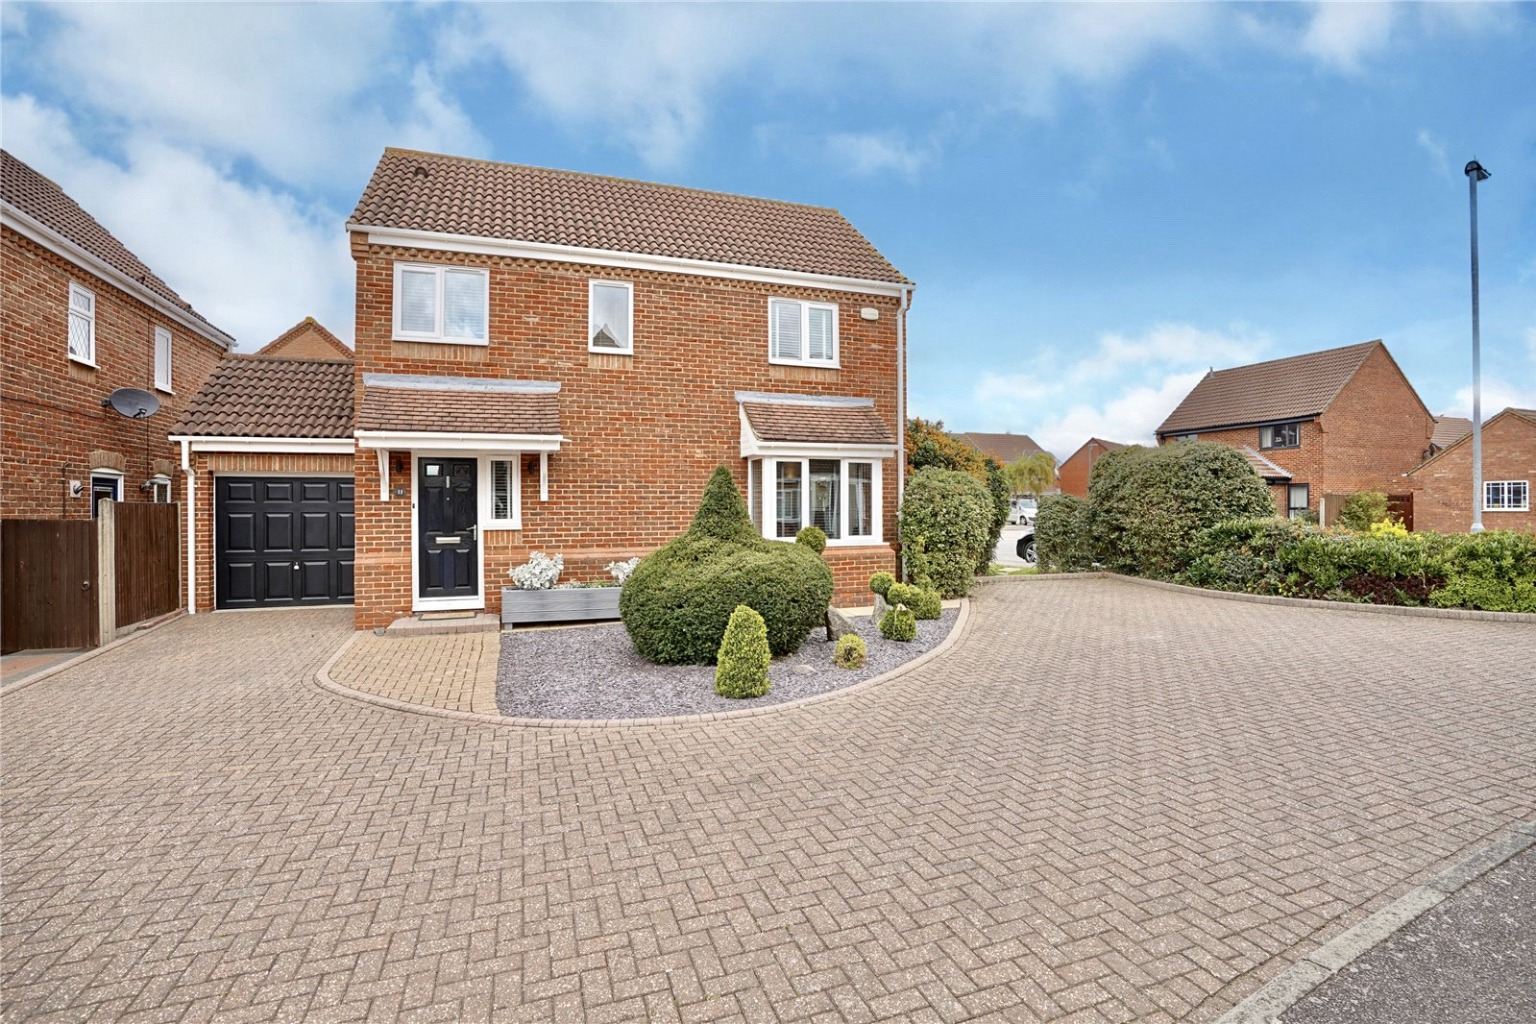 3 bed  for sale in Popham Close, St. Neots, PE19